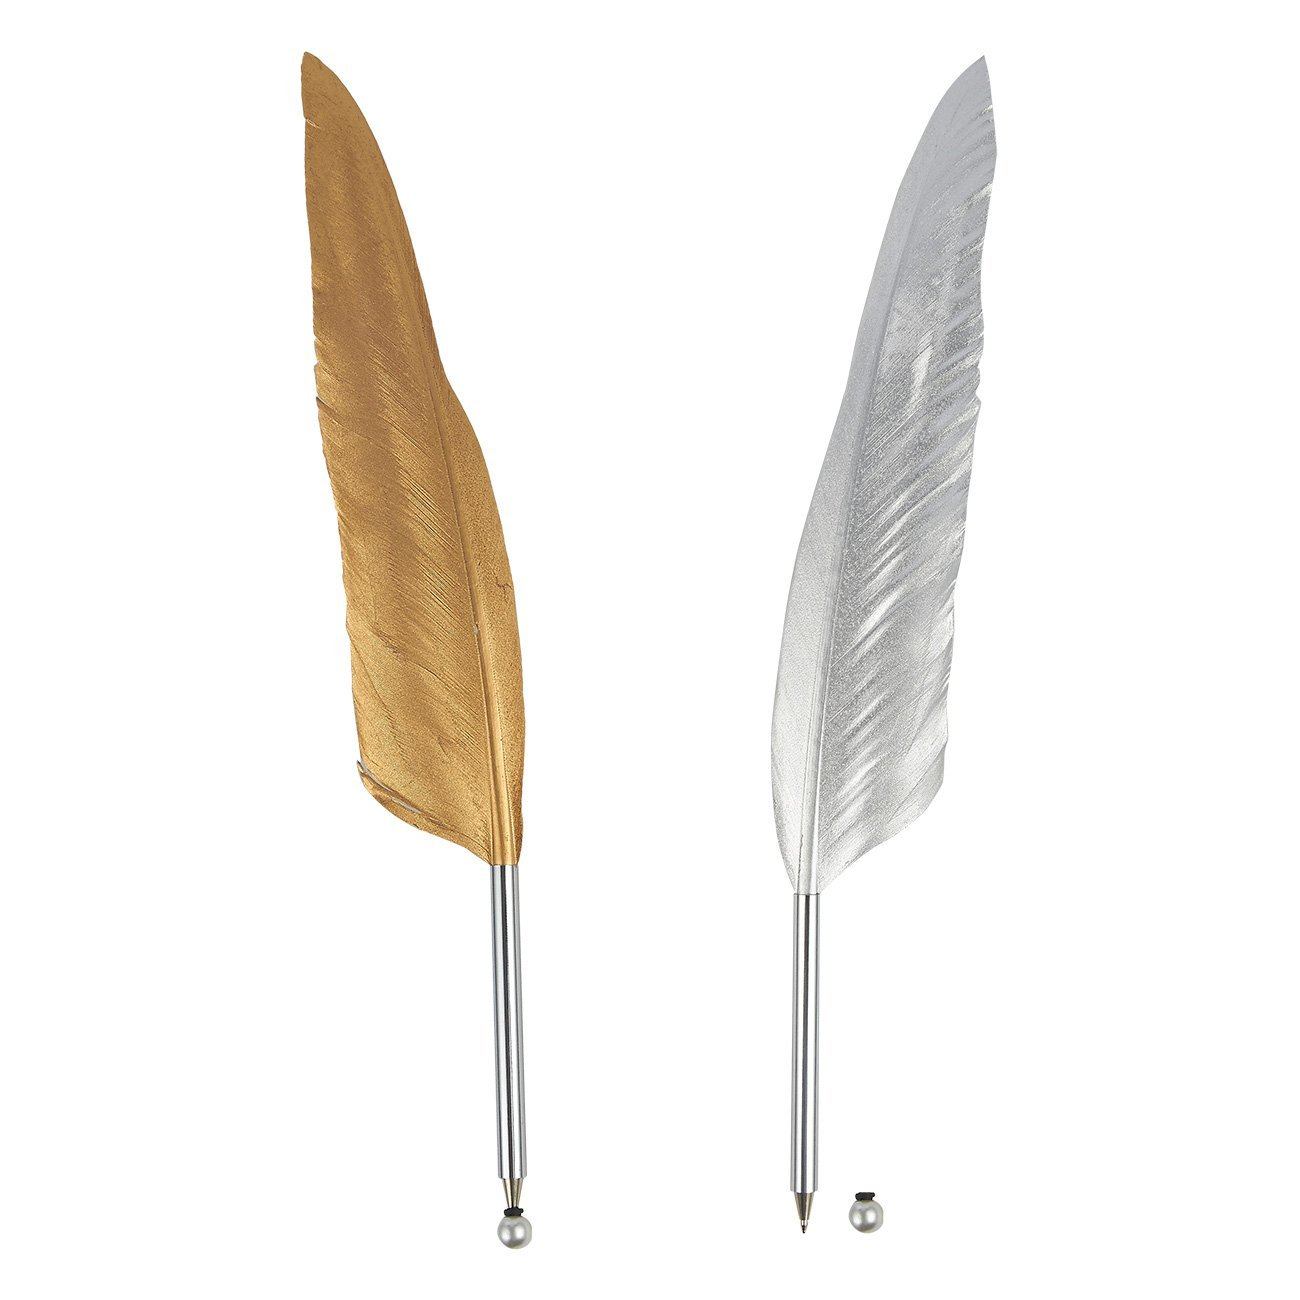 Feather Ballpoint Pens – 2-Count Feather Calligraphy Pens, Quill Luxury Pens for Writing, Signatures, Executive Desk Pens, Gold and Silver, 12.4 Inches in Length